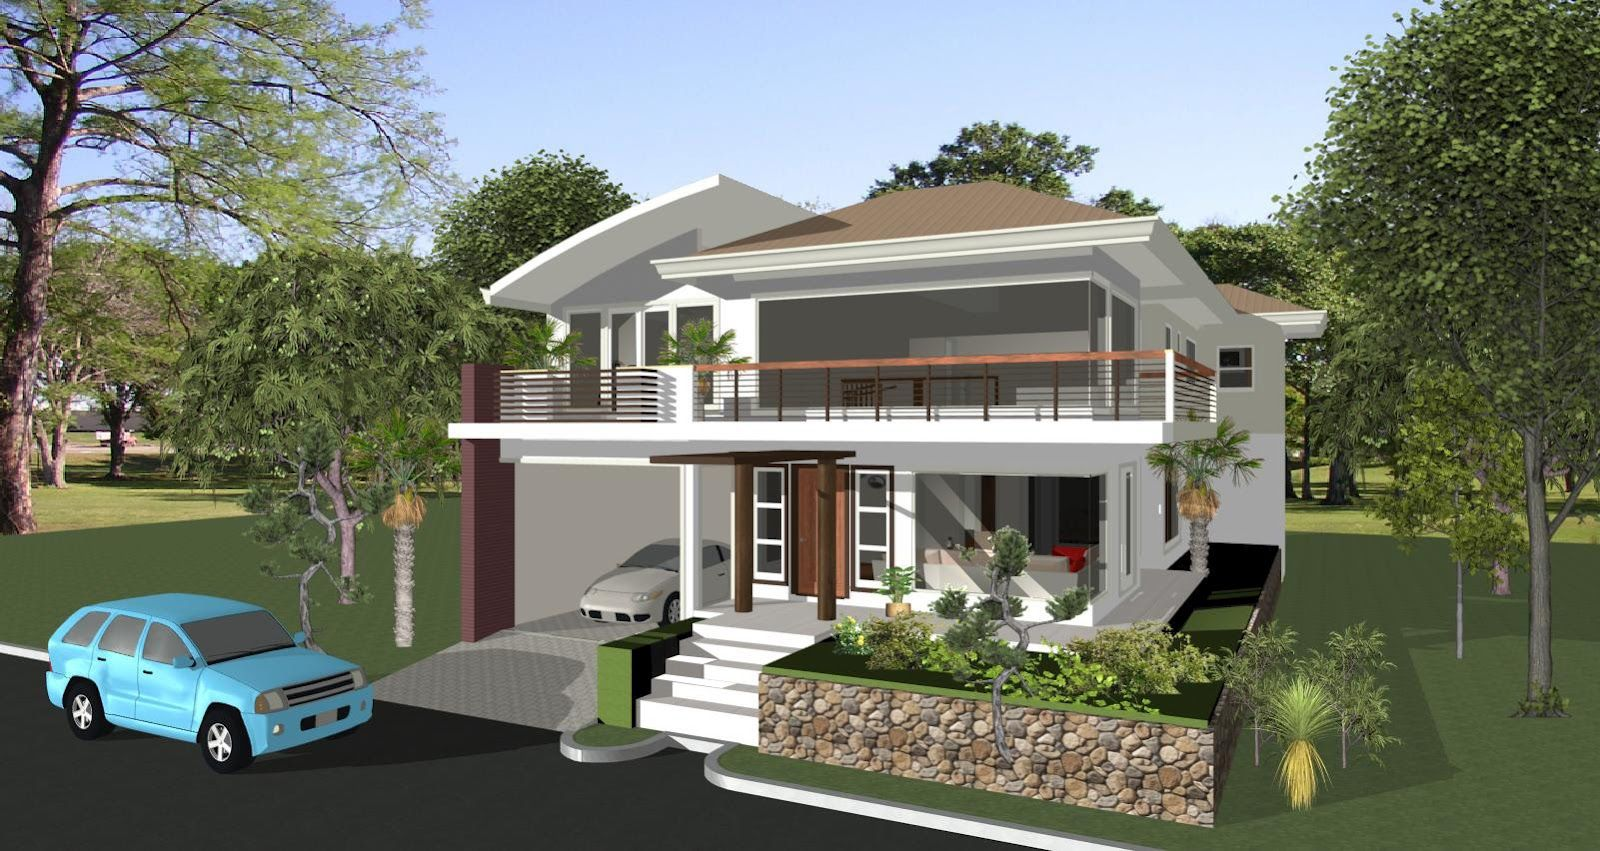 elevated home designs. Dream Home Designs  Erecre Group Realty Design and Construction